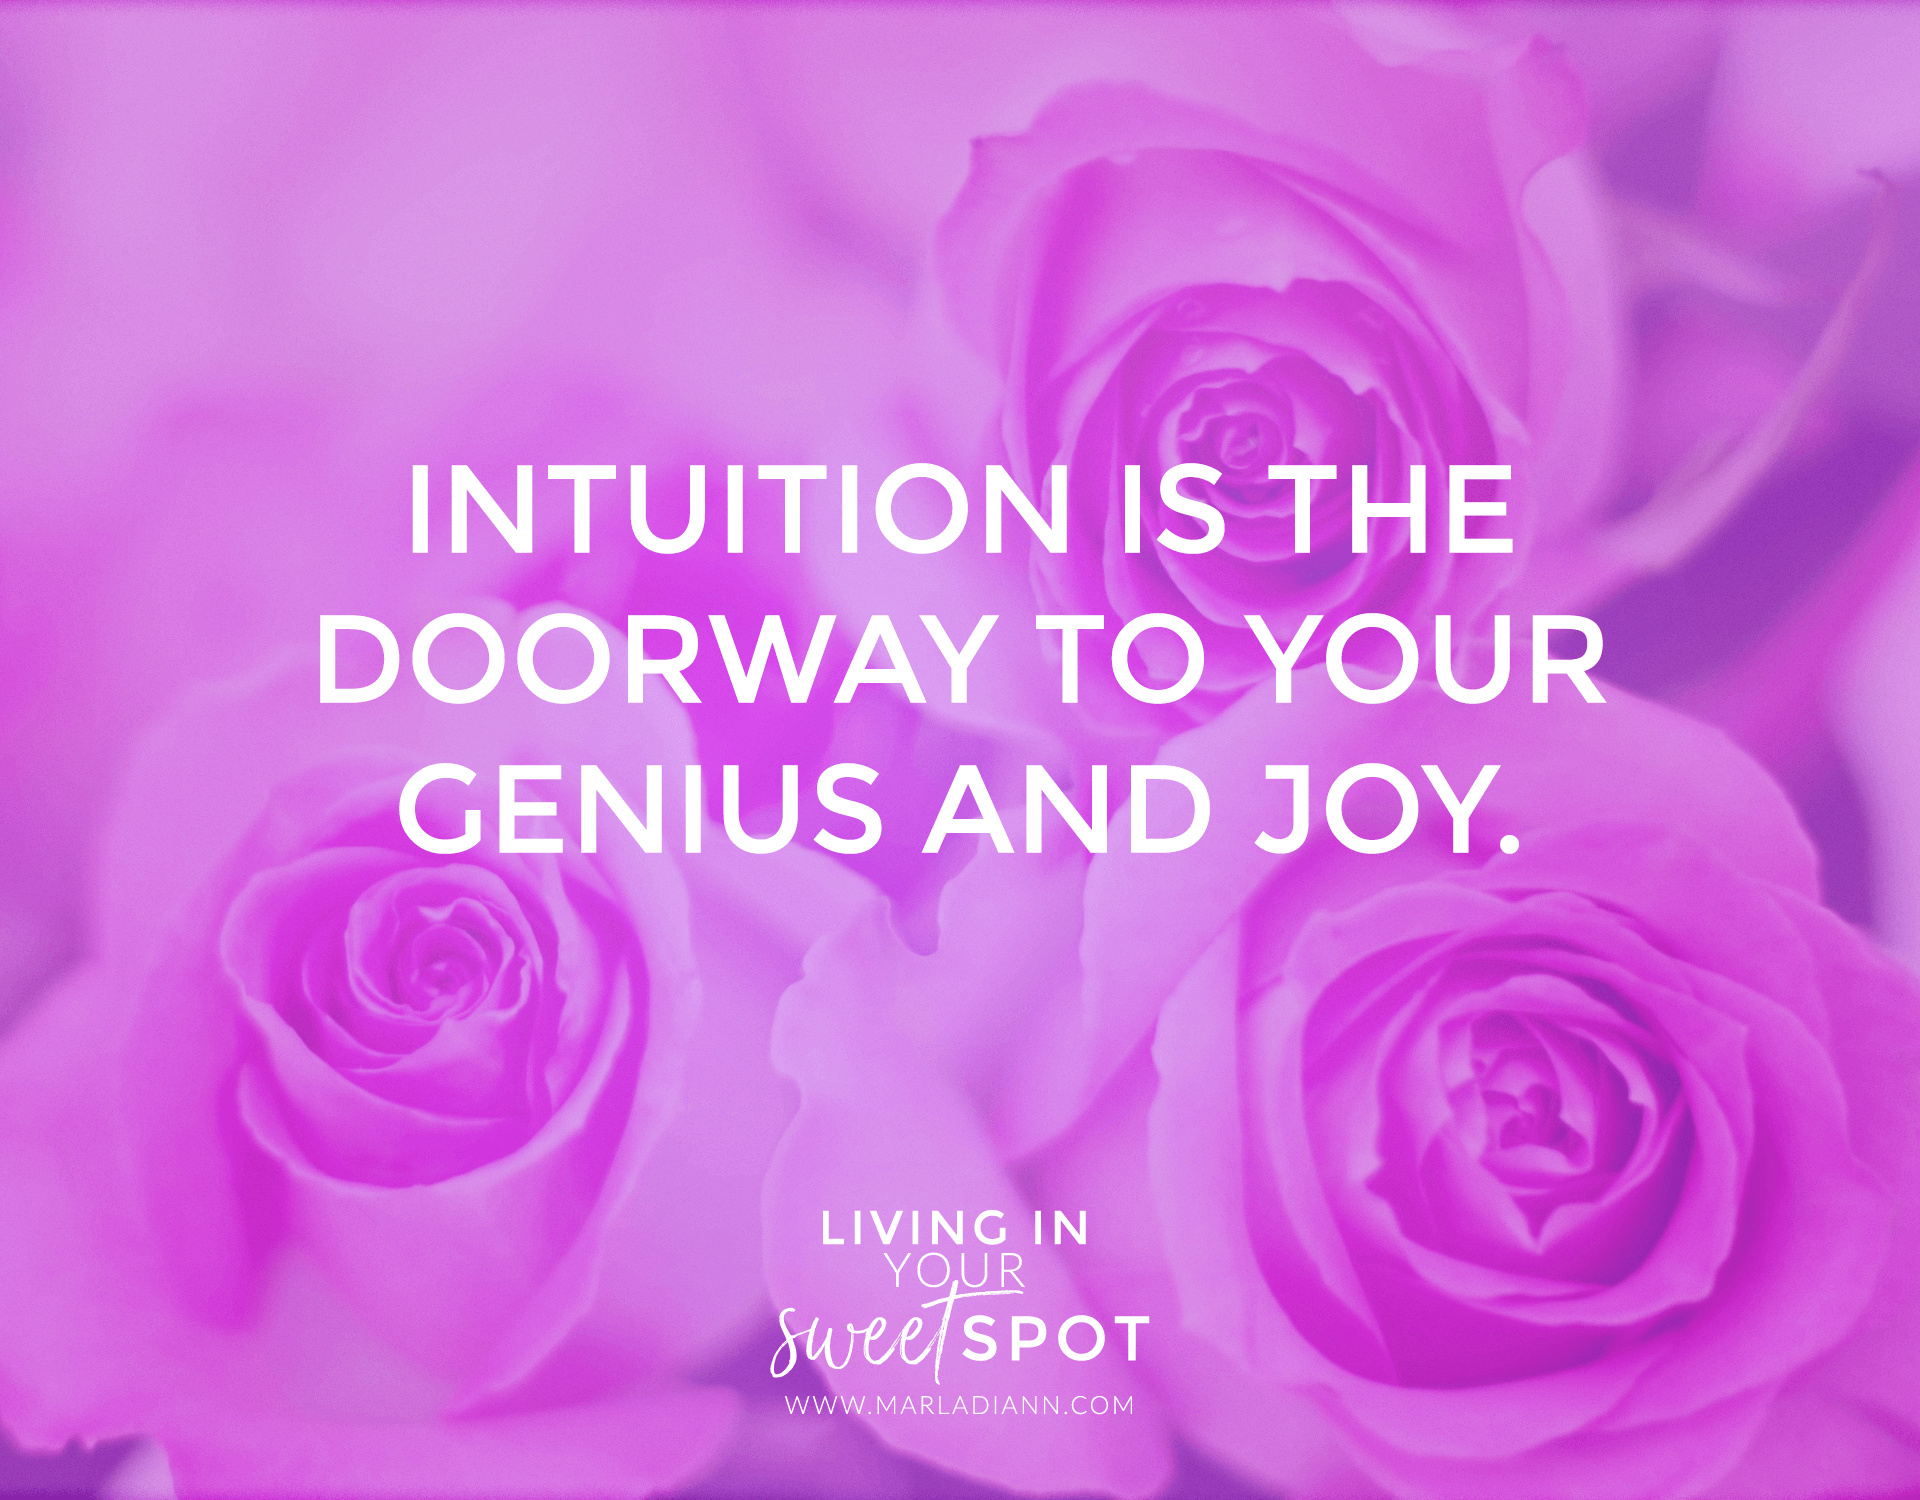 Sacred Steps to Strengthening Your Intuition